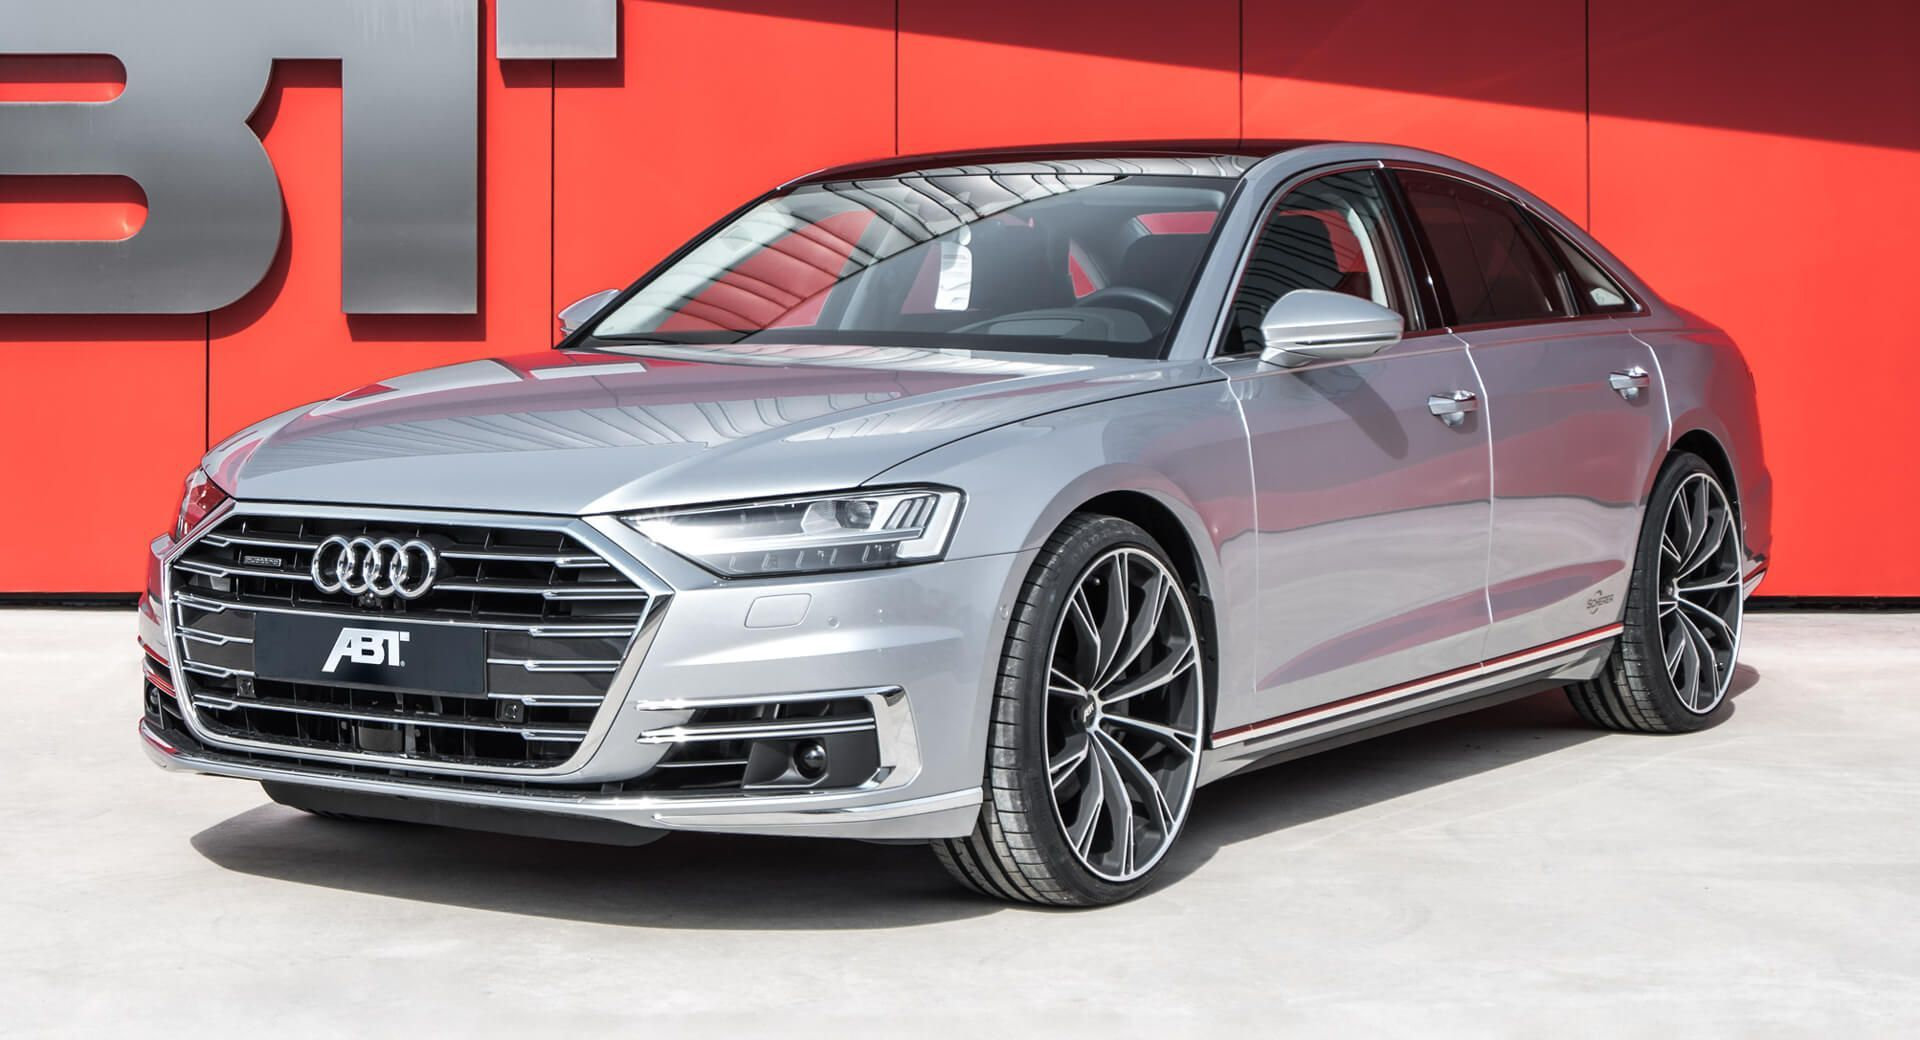 New Audi A8 Diesel Gets Muscled Up By Abt Carscoops Audi A8 Audi Volkswagen Group